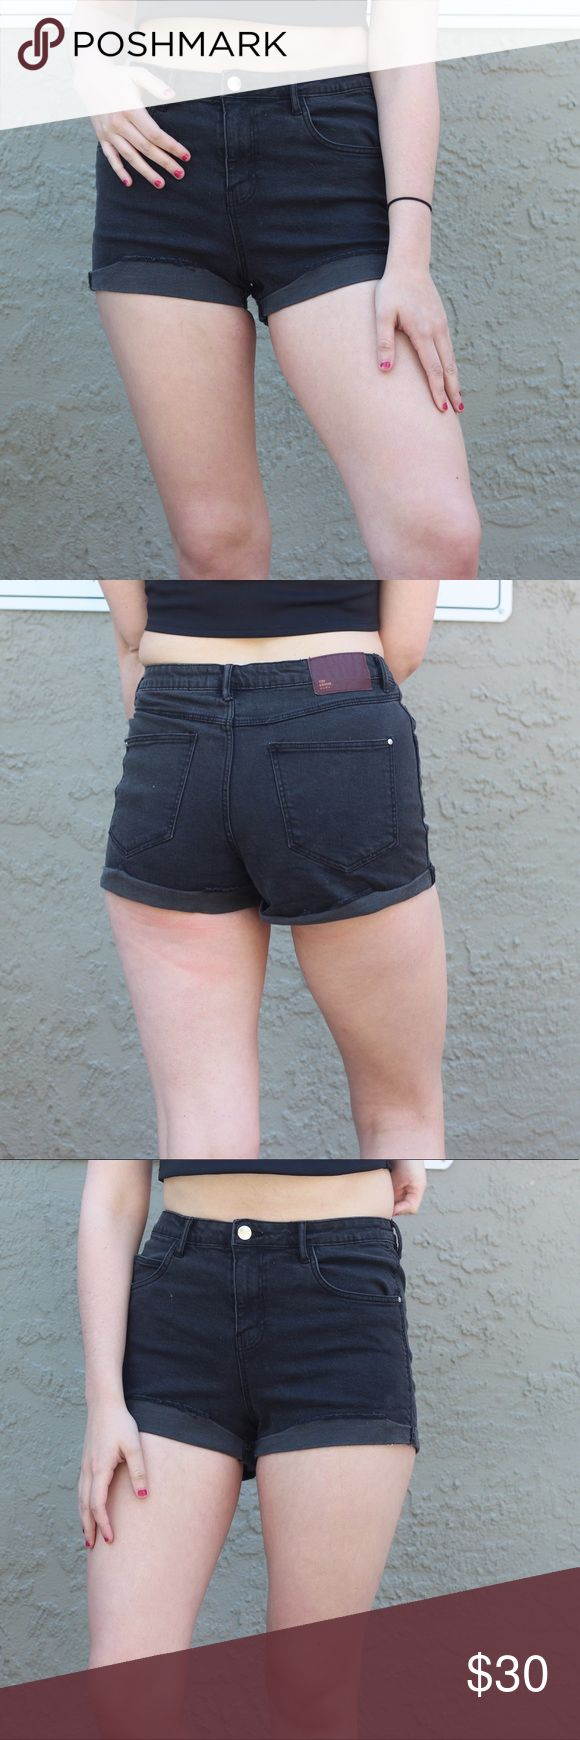 Zara high waist shorts Black high waisted shorts. Super co,fly and stretchy. Never worn Zara Shorts